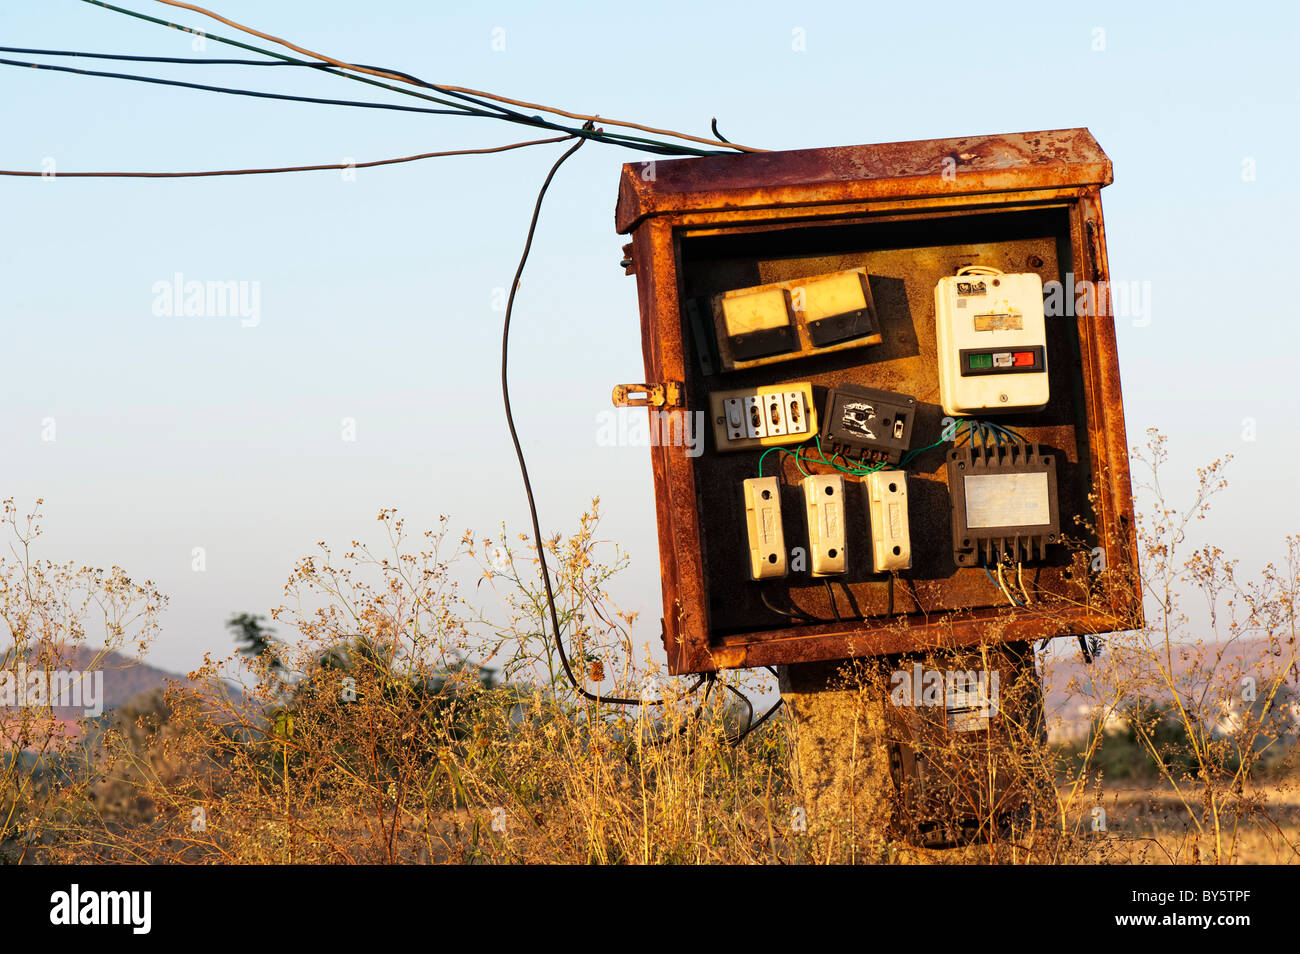 electrical fuse box in the rural indian countryside  andhra pradesh, india  - stock image